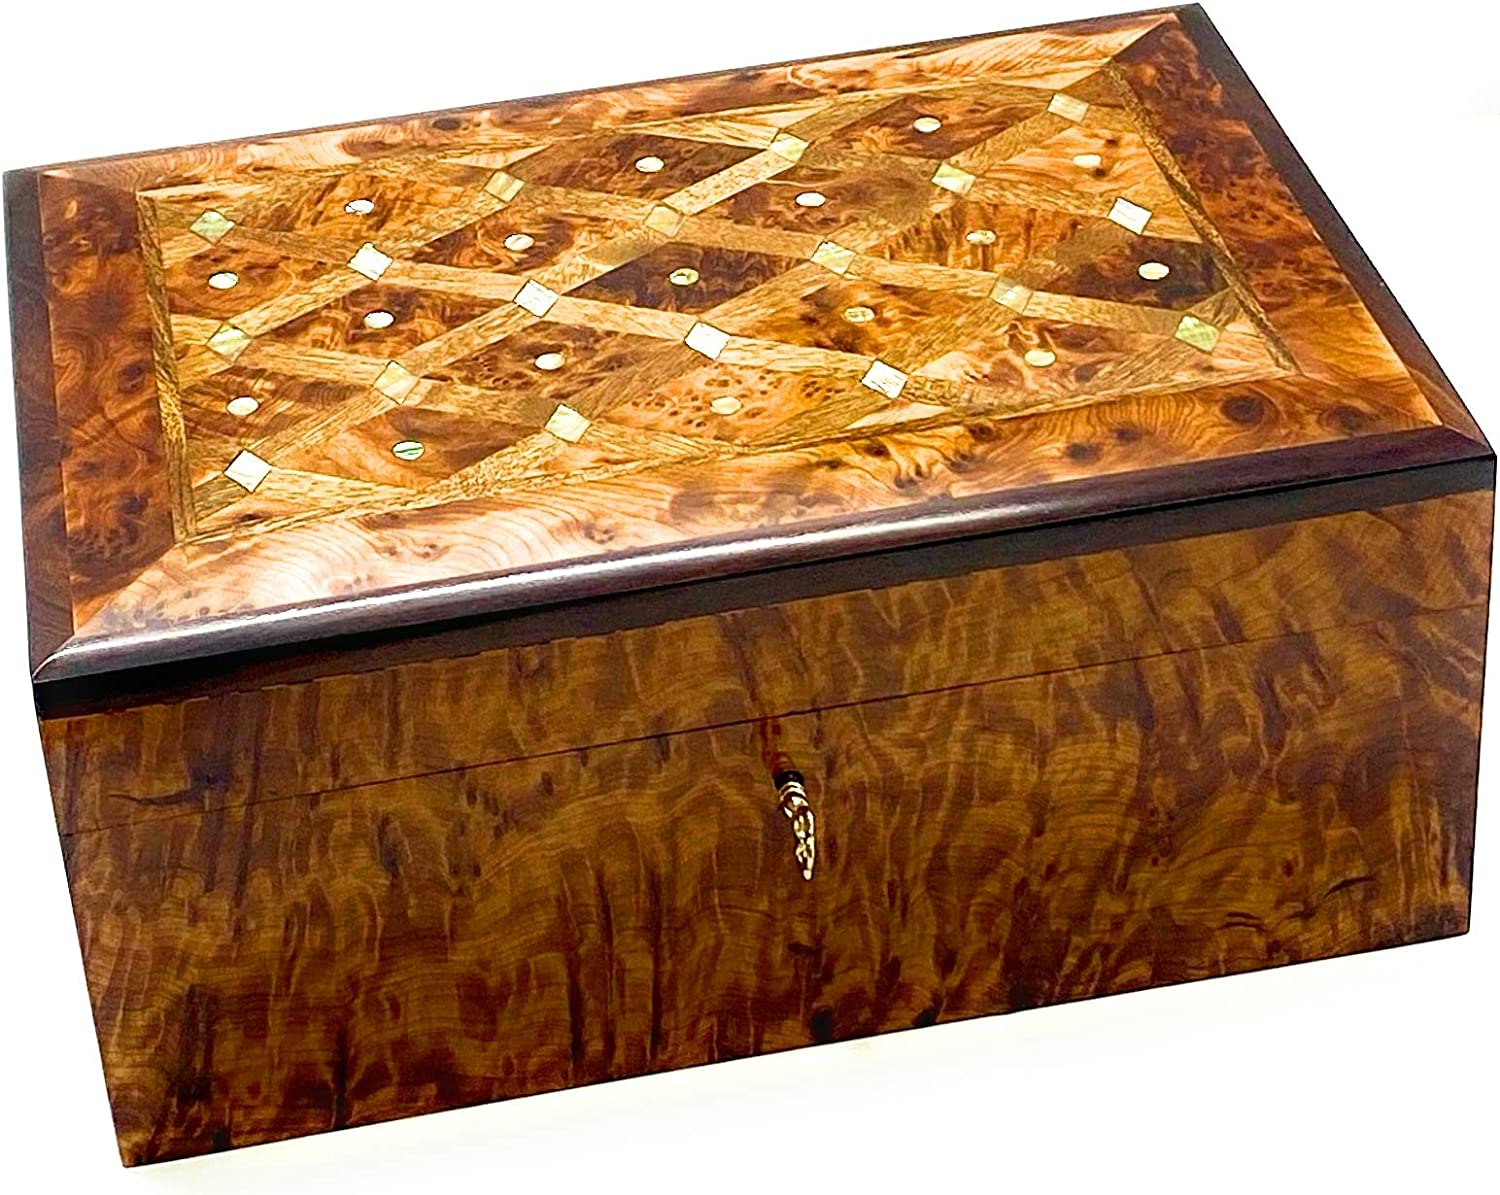 New Jewerly moroccan Box Thuya Wood With 3 Drawers handmade for women best gift for mother/'s day 100/% natural